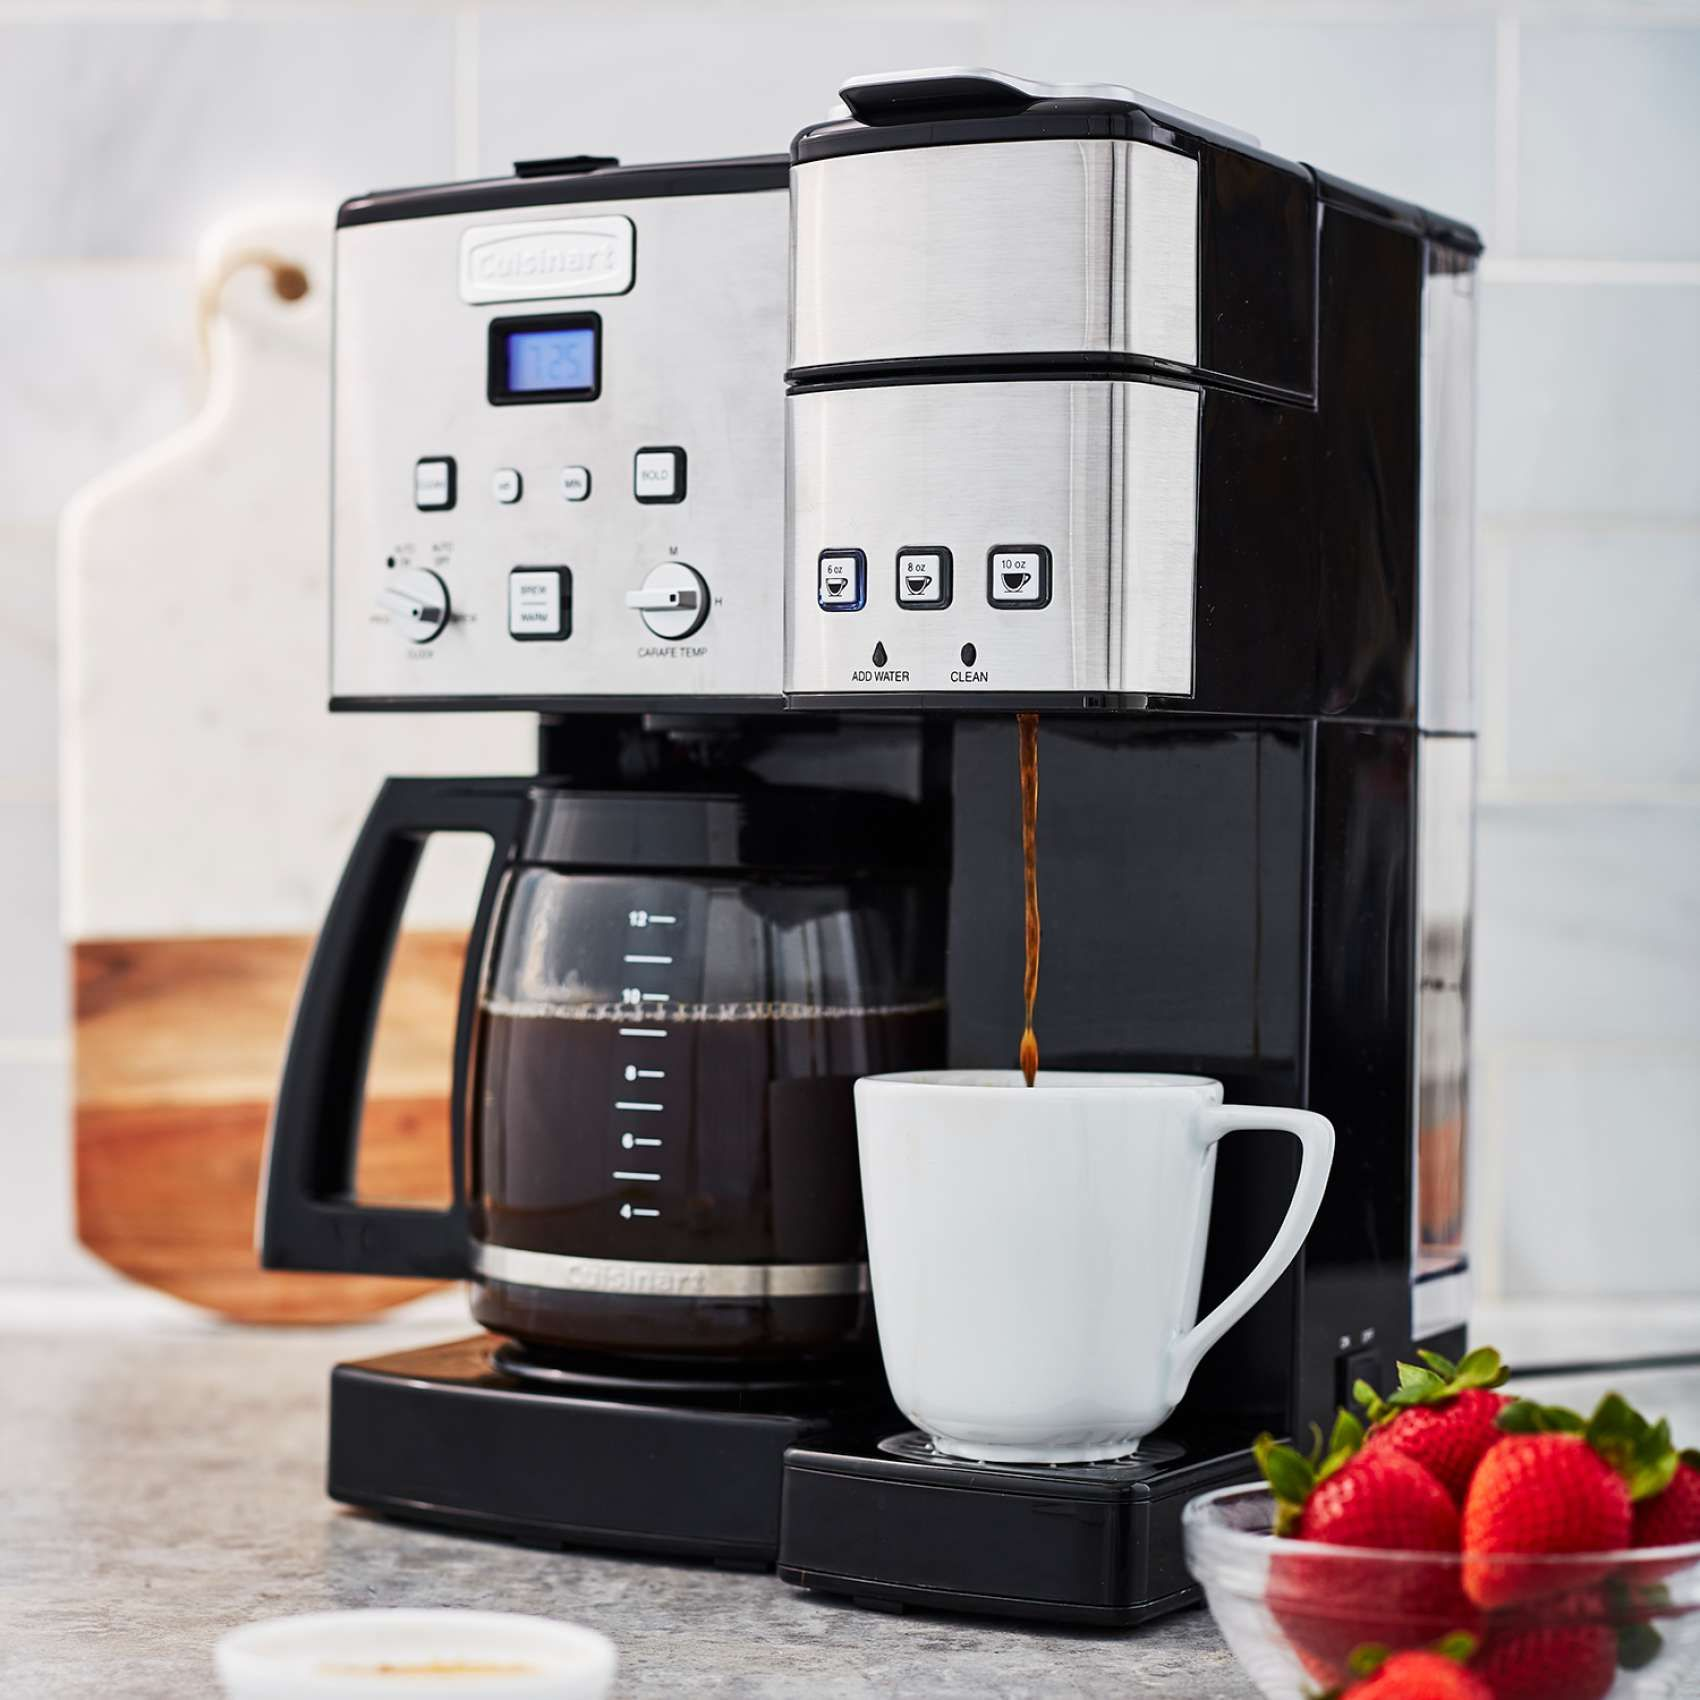 Cuisinart Coffee Center 12 Cup Coffee Maker And Single Serve Brewer Sur La Table Cuisinart Coffee Maker Drip Coffee Maker Coffee